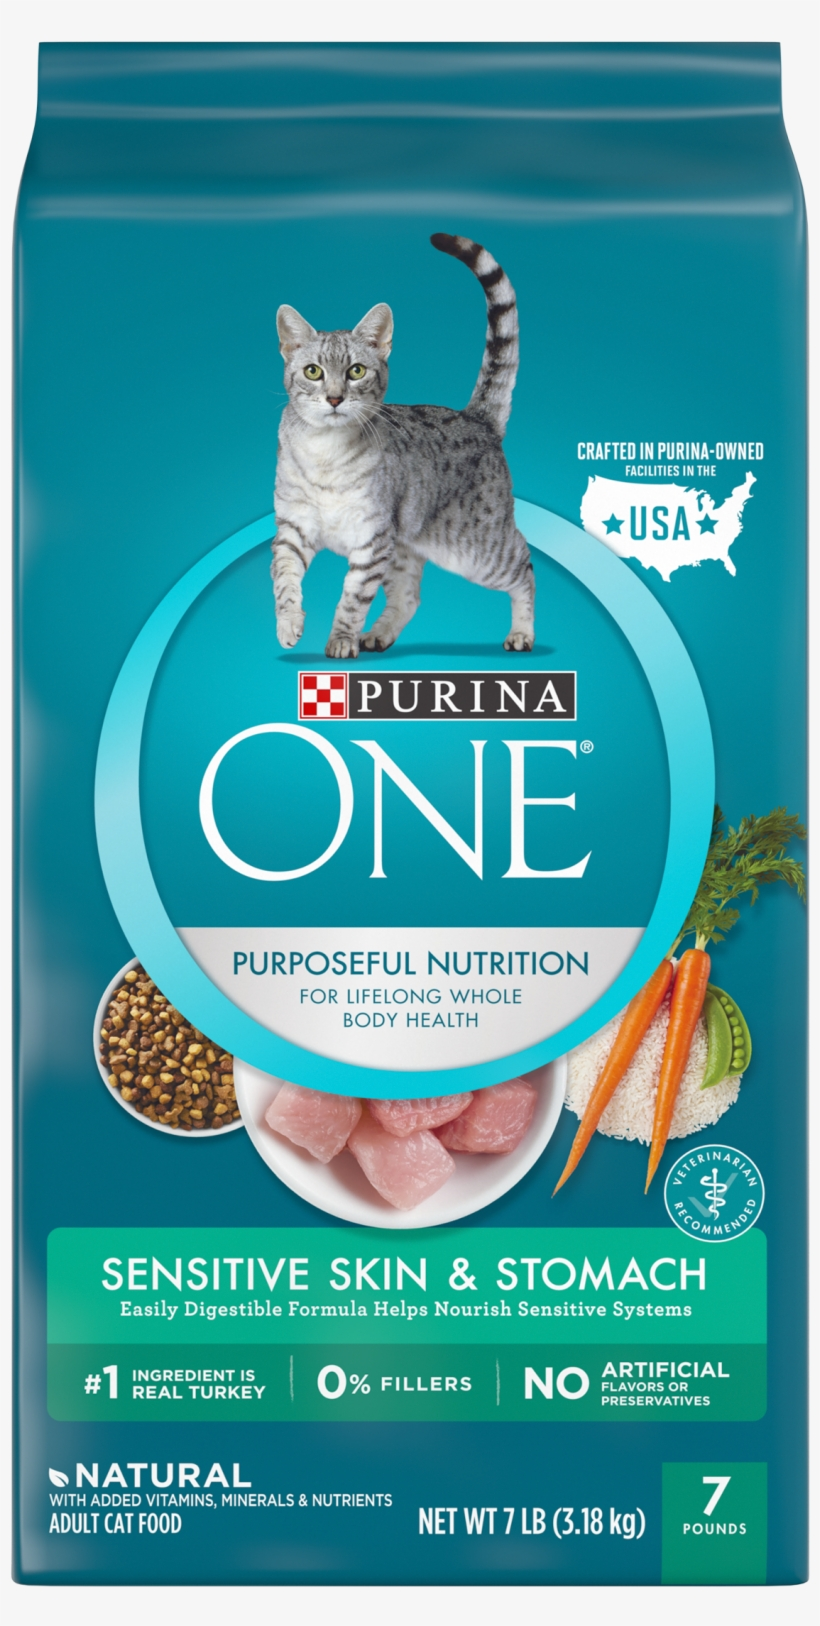 Purina One Sensitive Skin & Stomach Formula Adult Dry - Purina One Cat Food Indoor, transparent png #711017